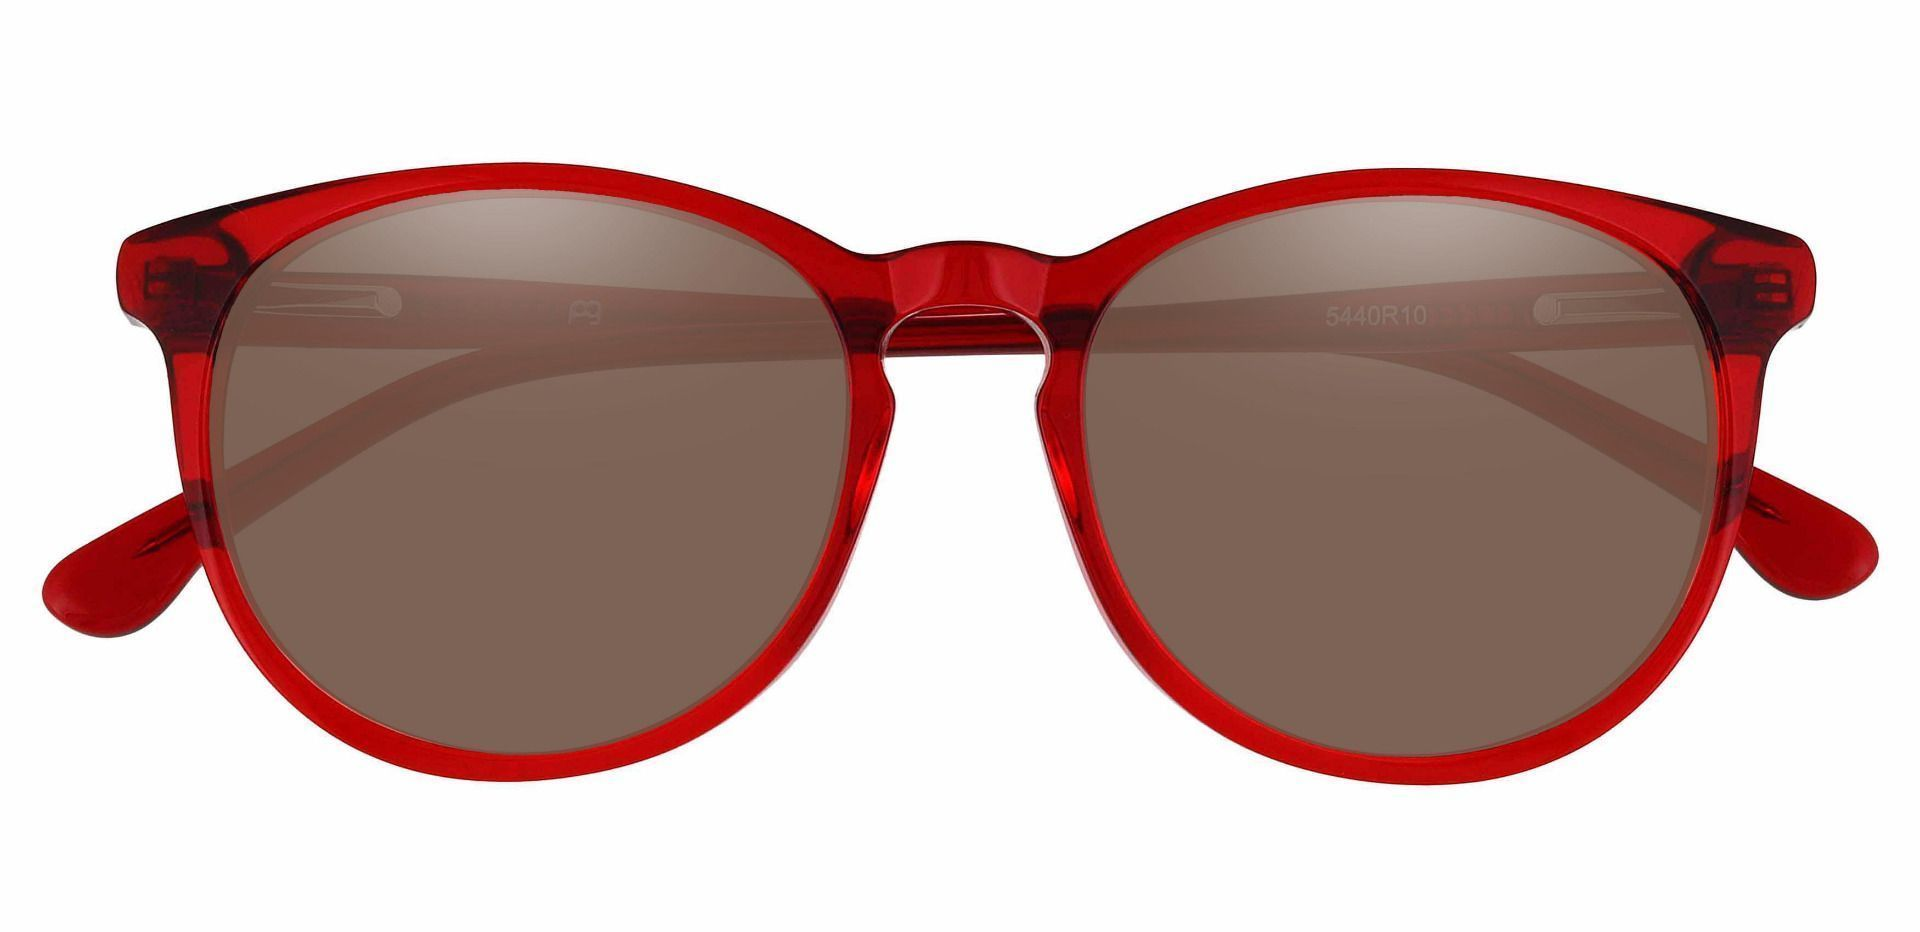 Carriage Round Progressive Sunglasses - Red Frame With Brown Lenses